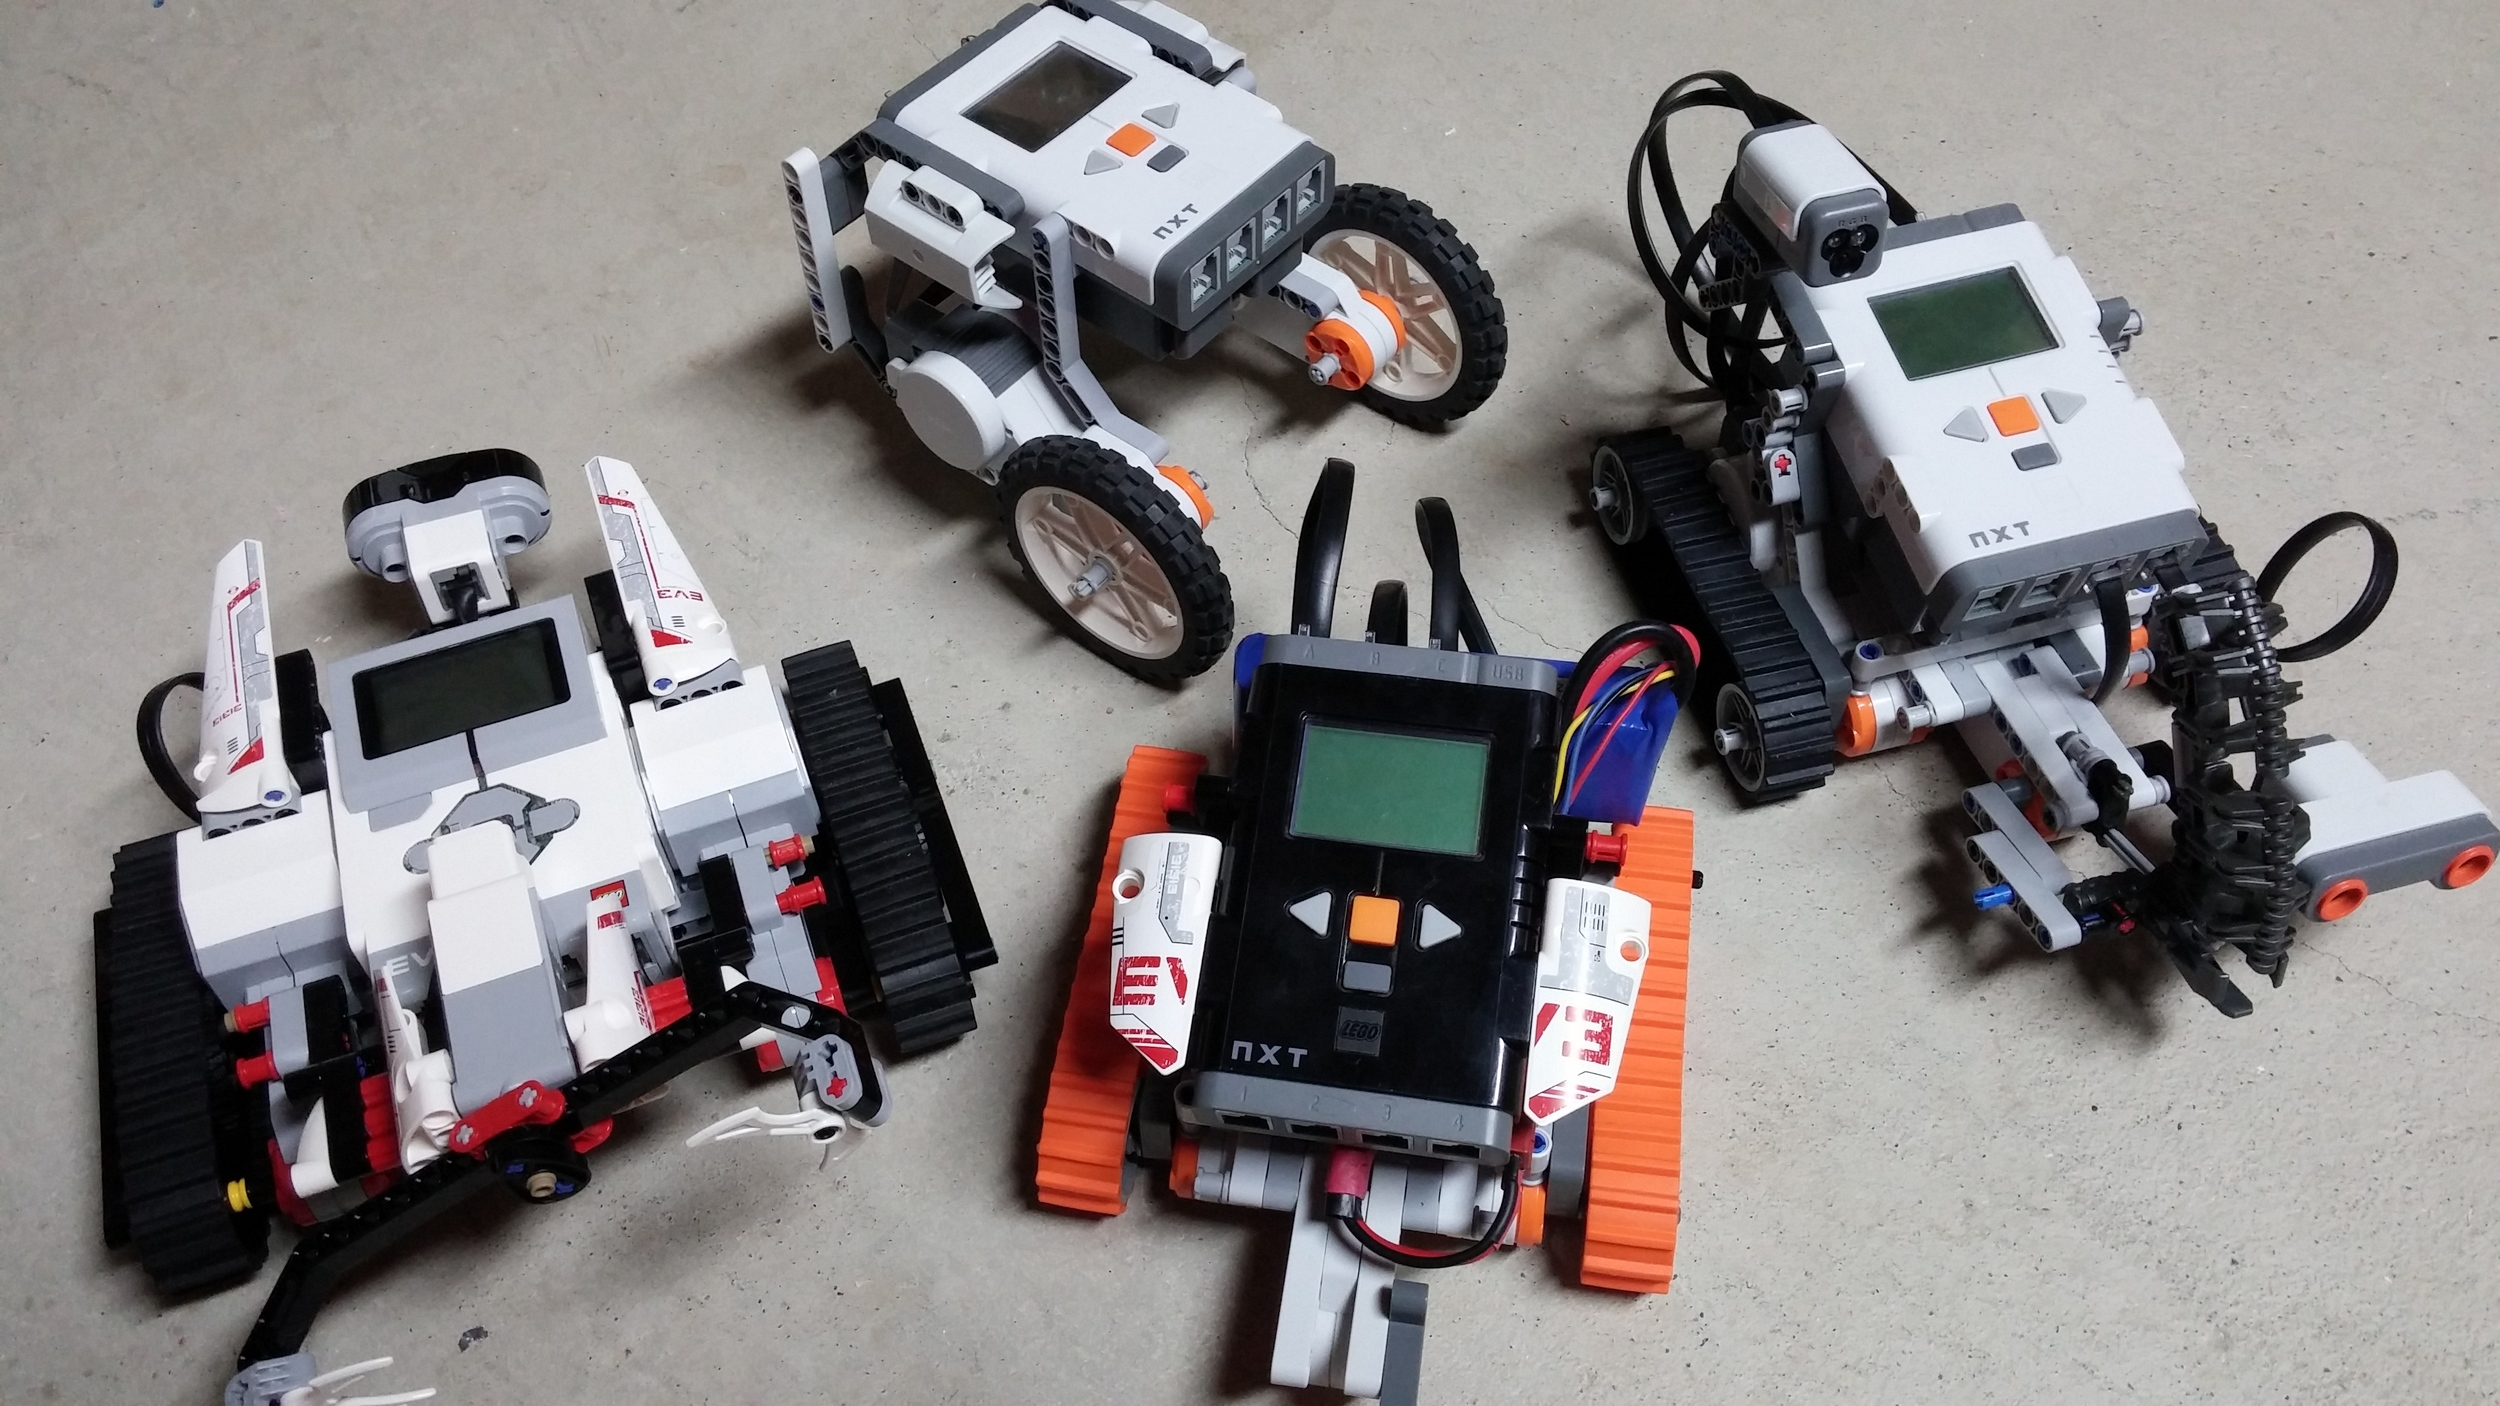 Mindstorms EV3 and NXTs :)